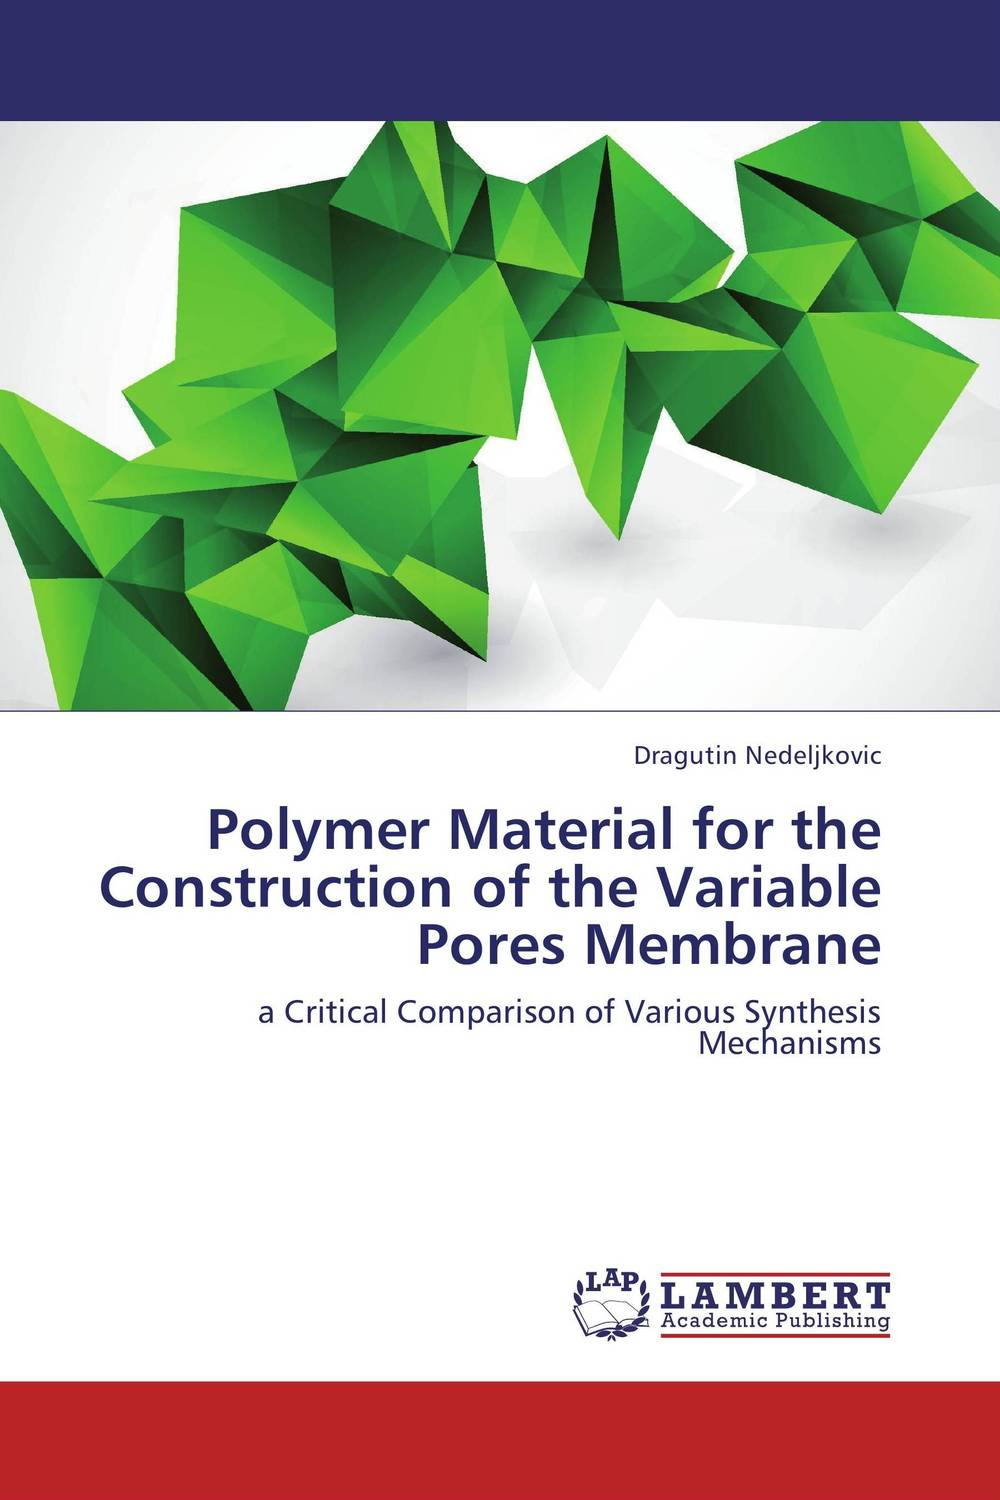 Polymer Material for the Construction of the Variable Pores Membrane